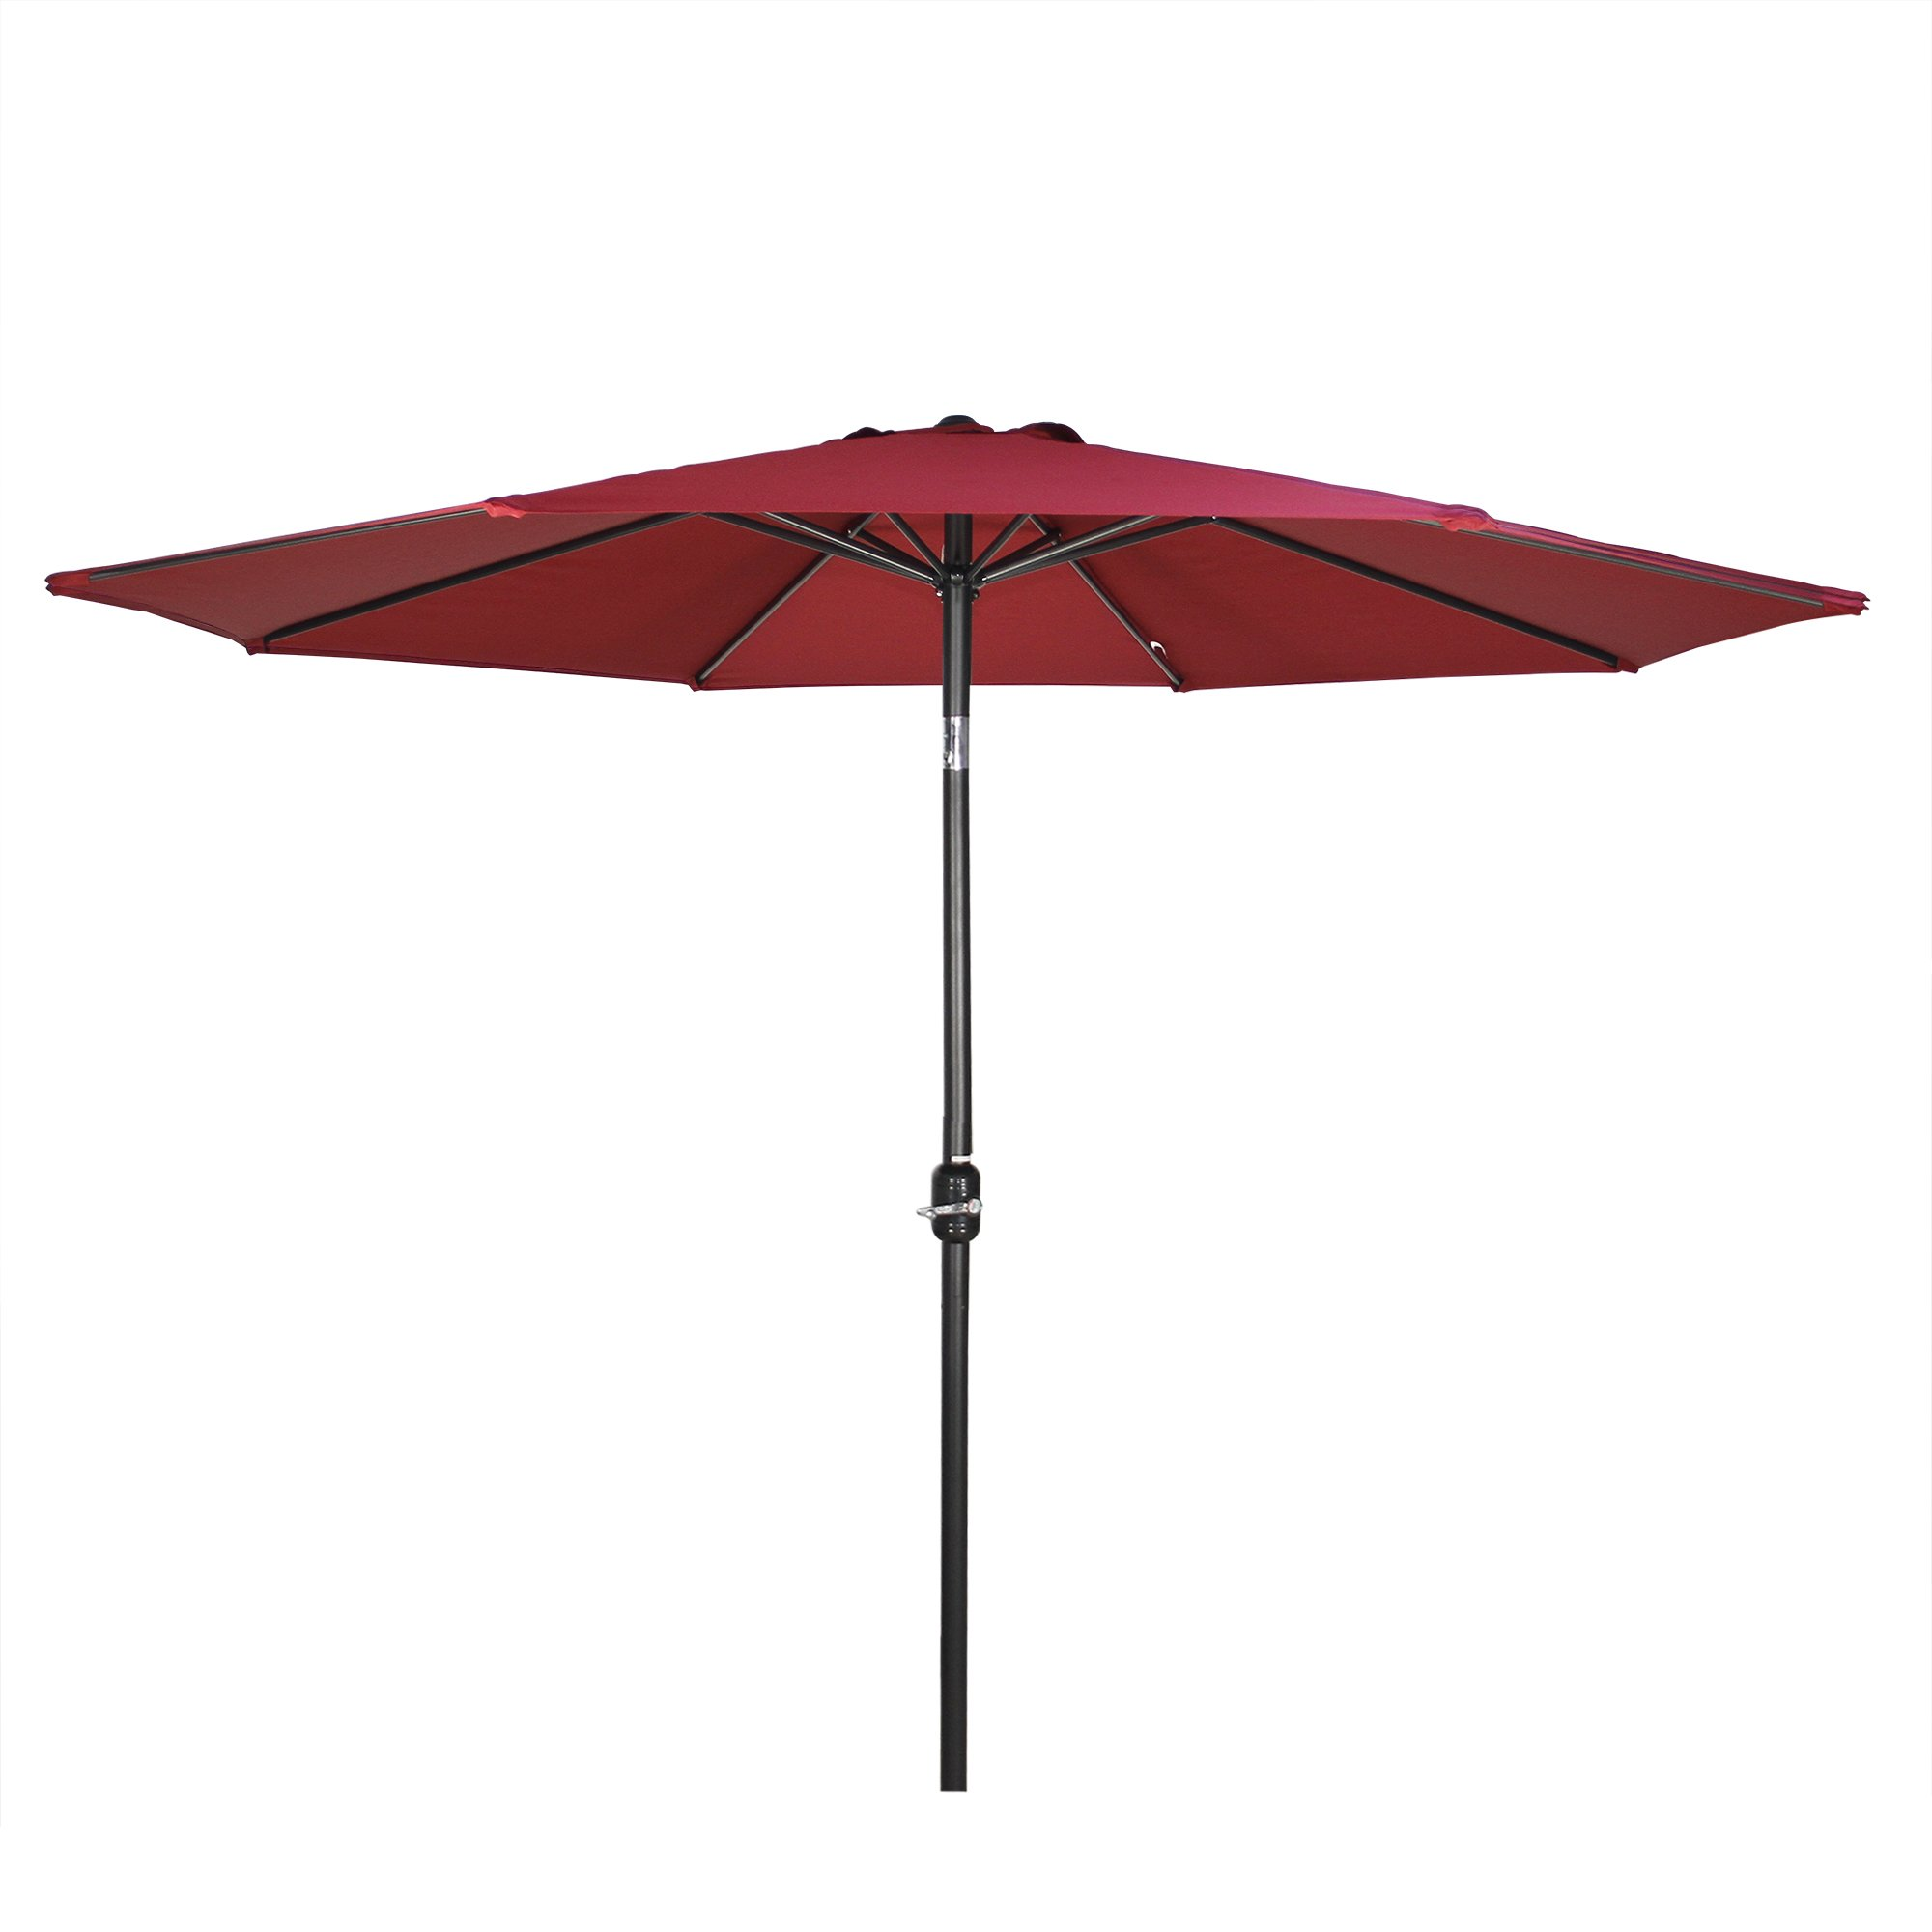 G-House 9 Ft Garden Patio Umbrella Outdoor Table Umbrella with Push Button Tilt and Crank, Sturdy Steel, 8 Ribs (Wine Red)